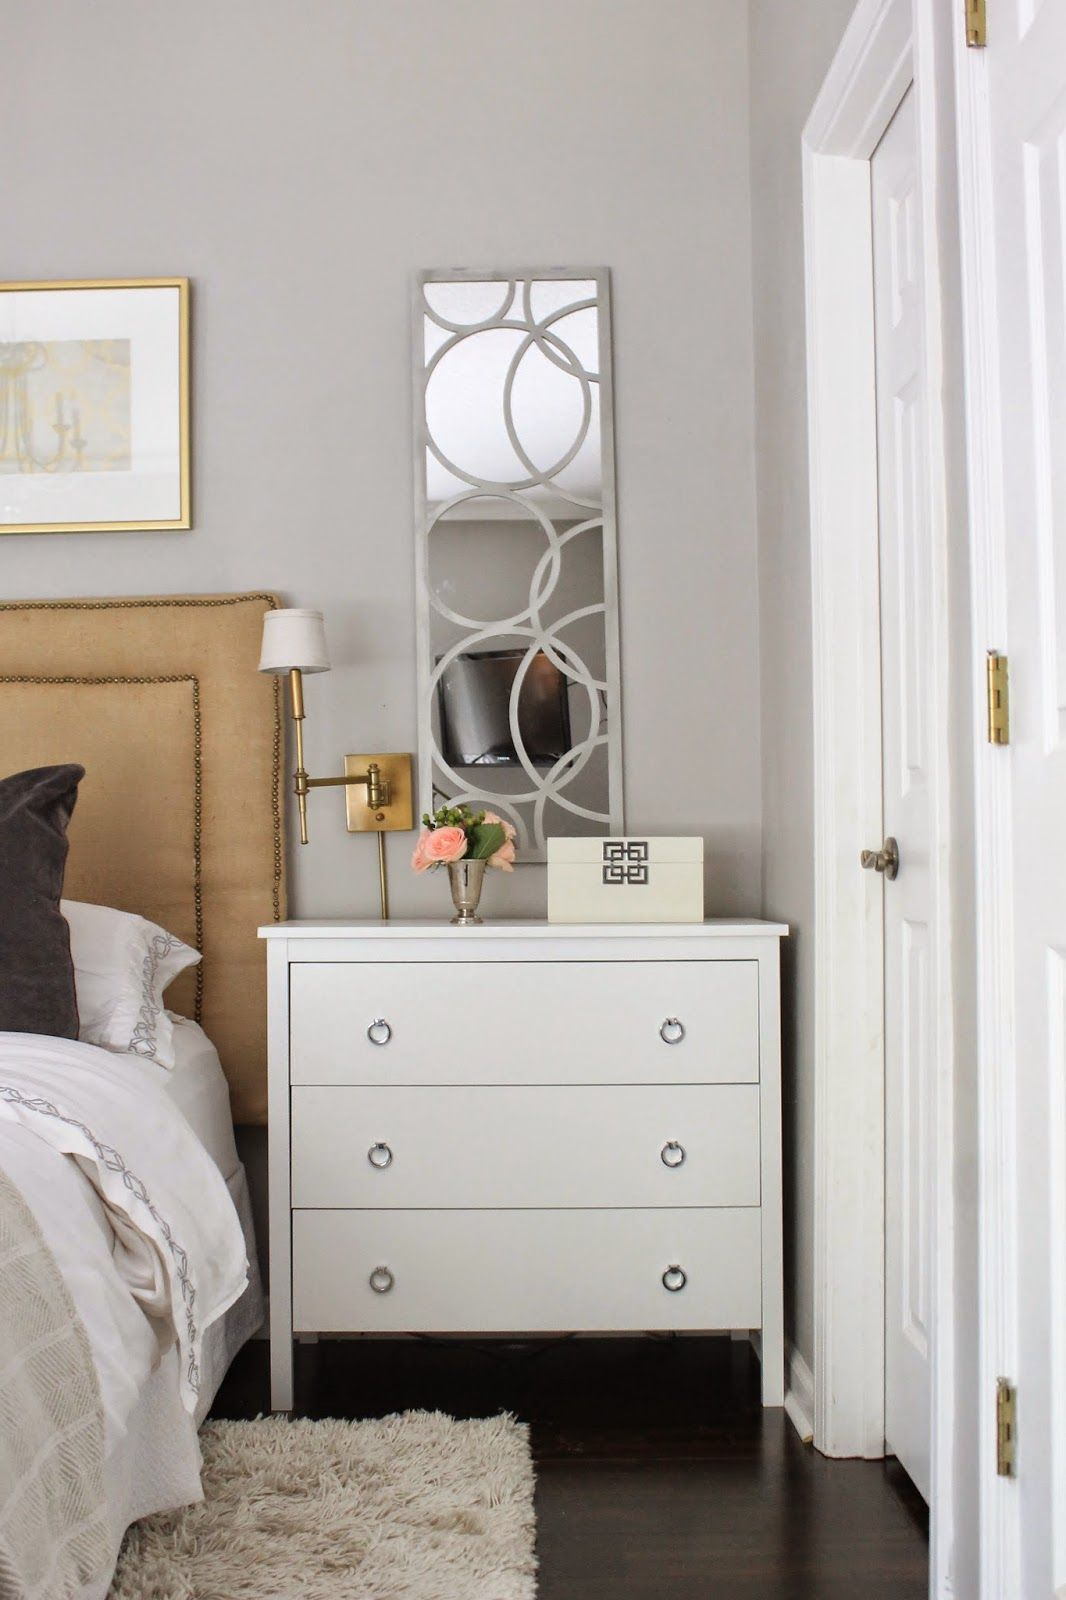 Ikea Koppang Dresser Home Bedroom Pinterest Dresser Bedrooms And Master Bedroom